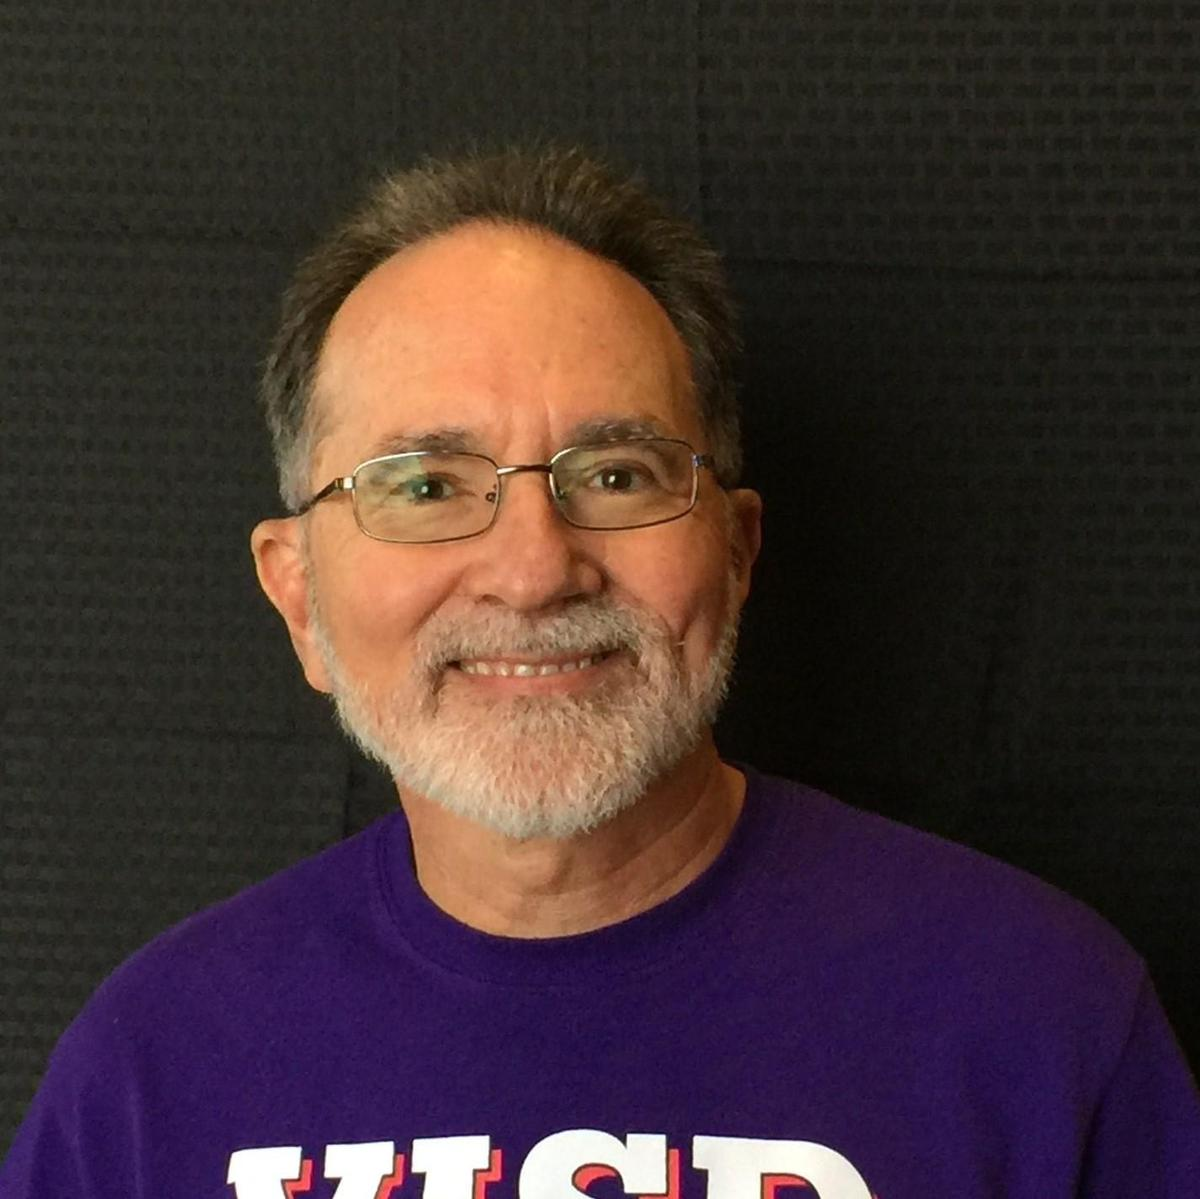 donald tharp guitar instructor and district facilitator for cultural arts